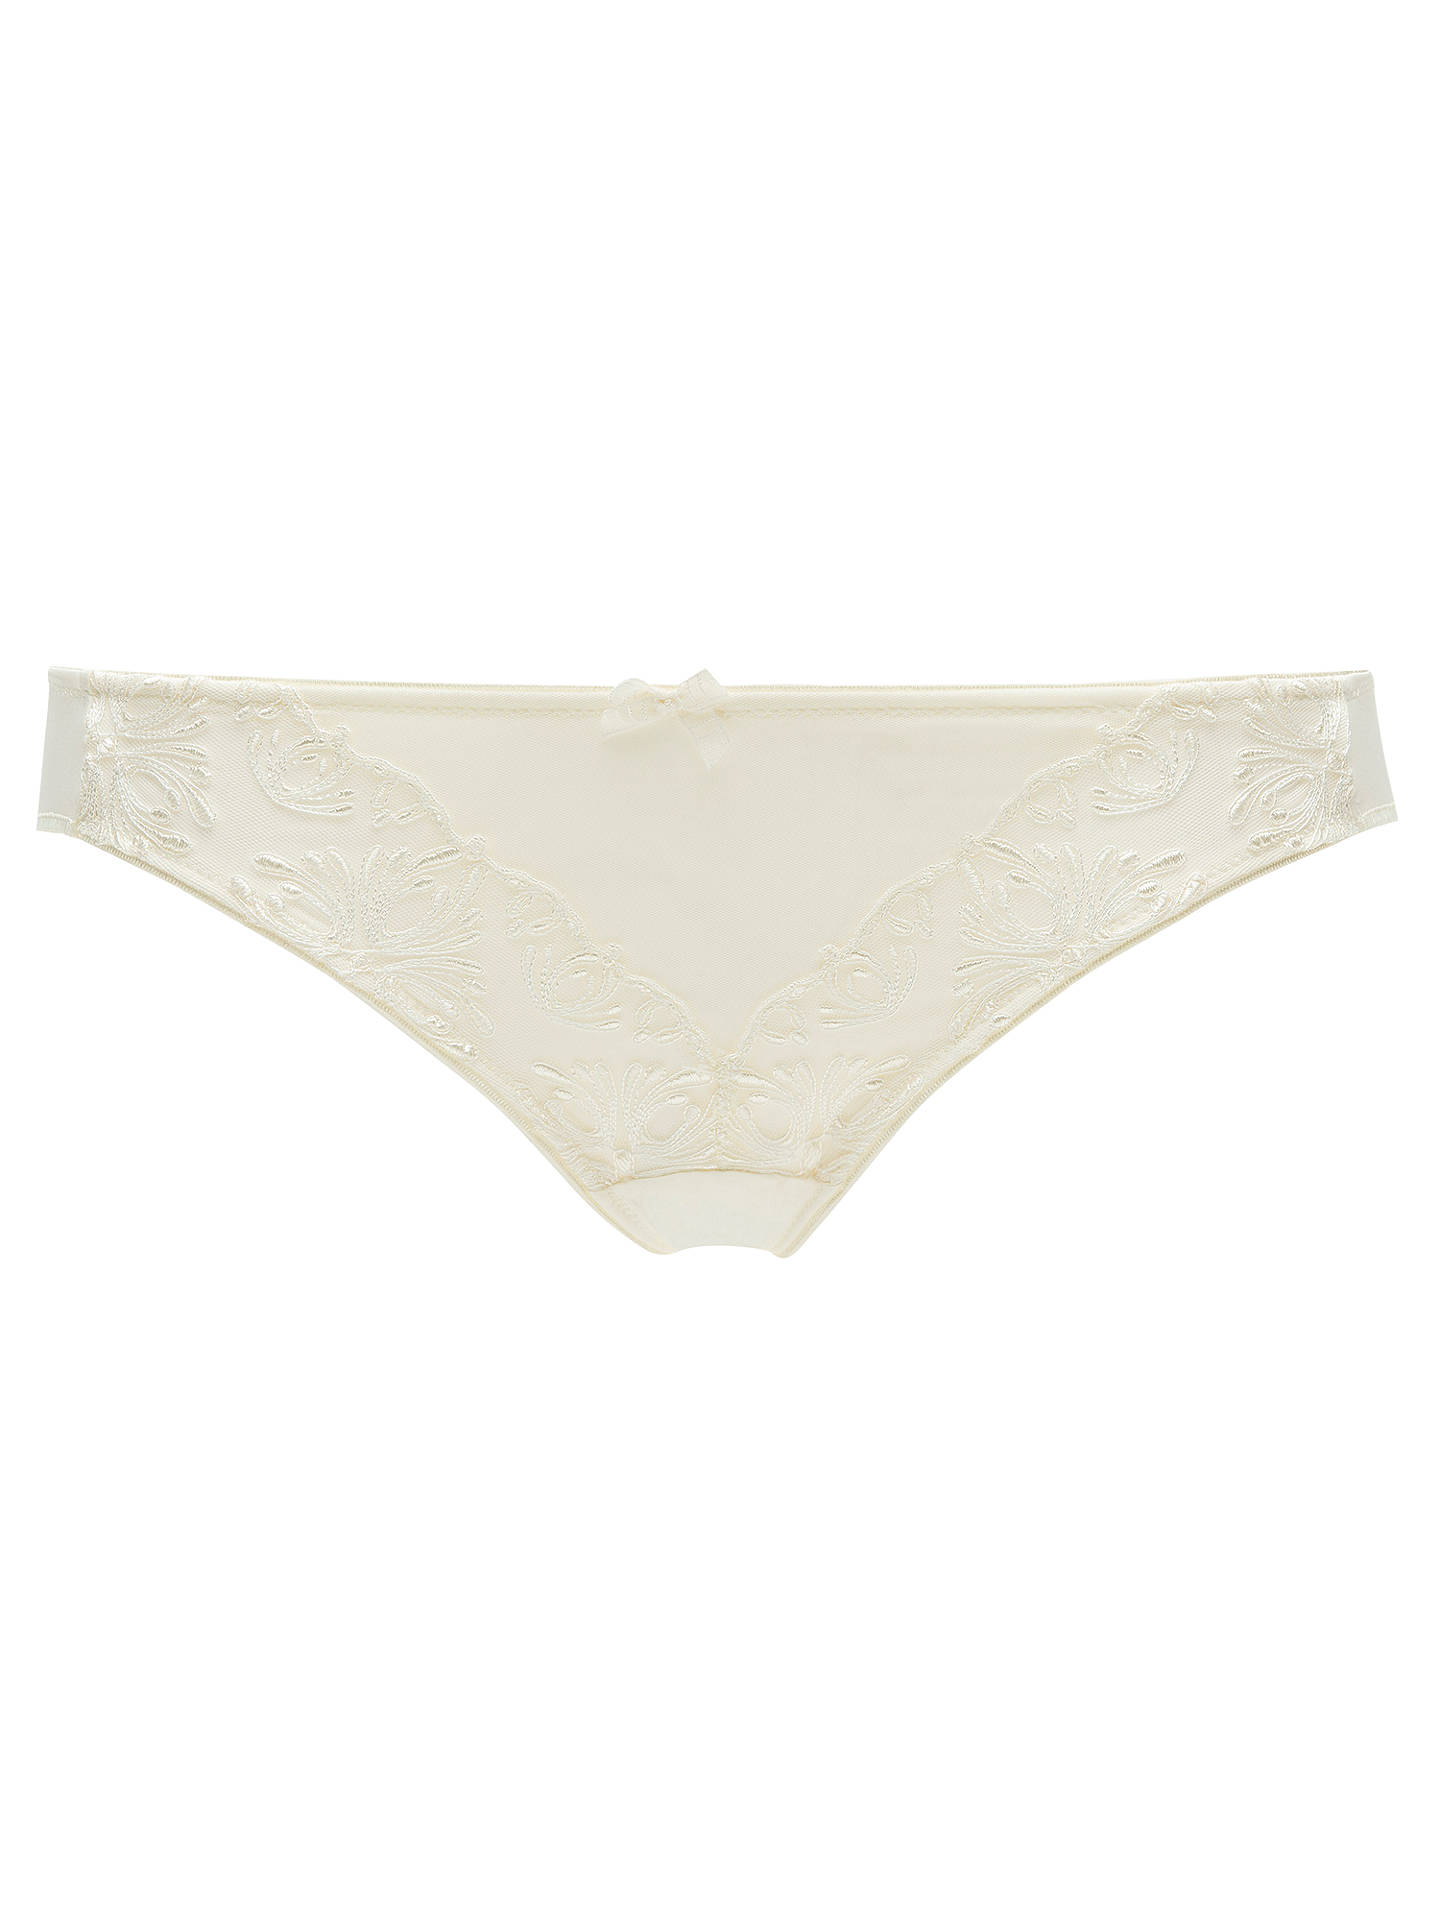 BuyChantelle Champs Elysees Briefs, Ivory, S Online at johnlewis.com